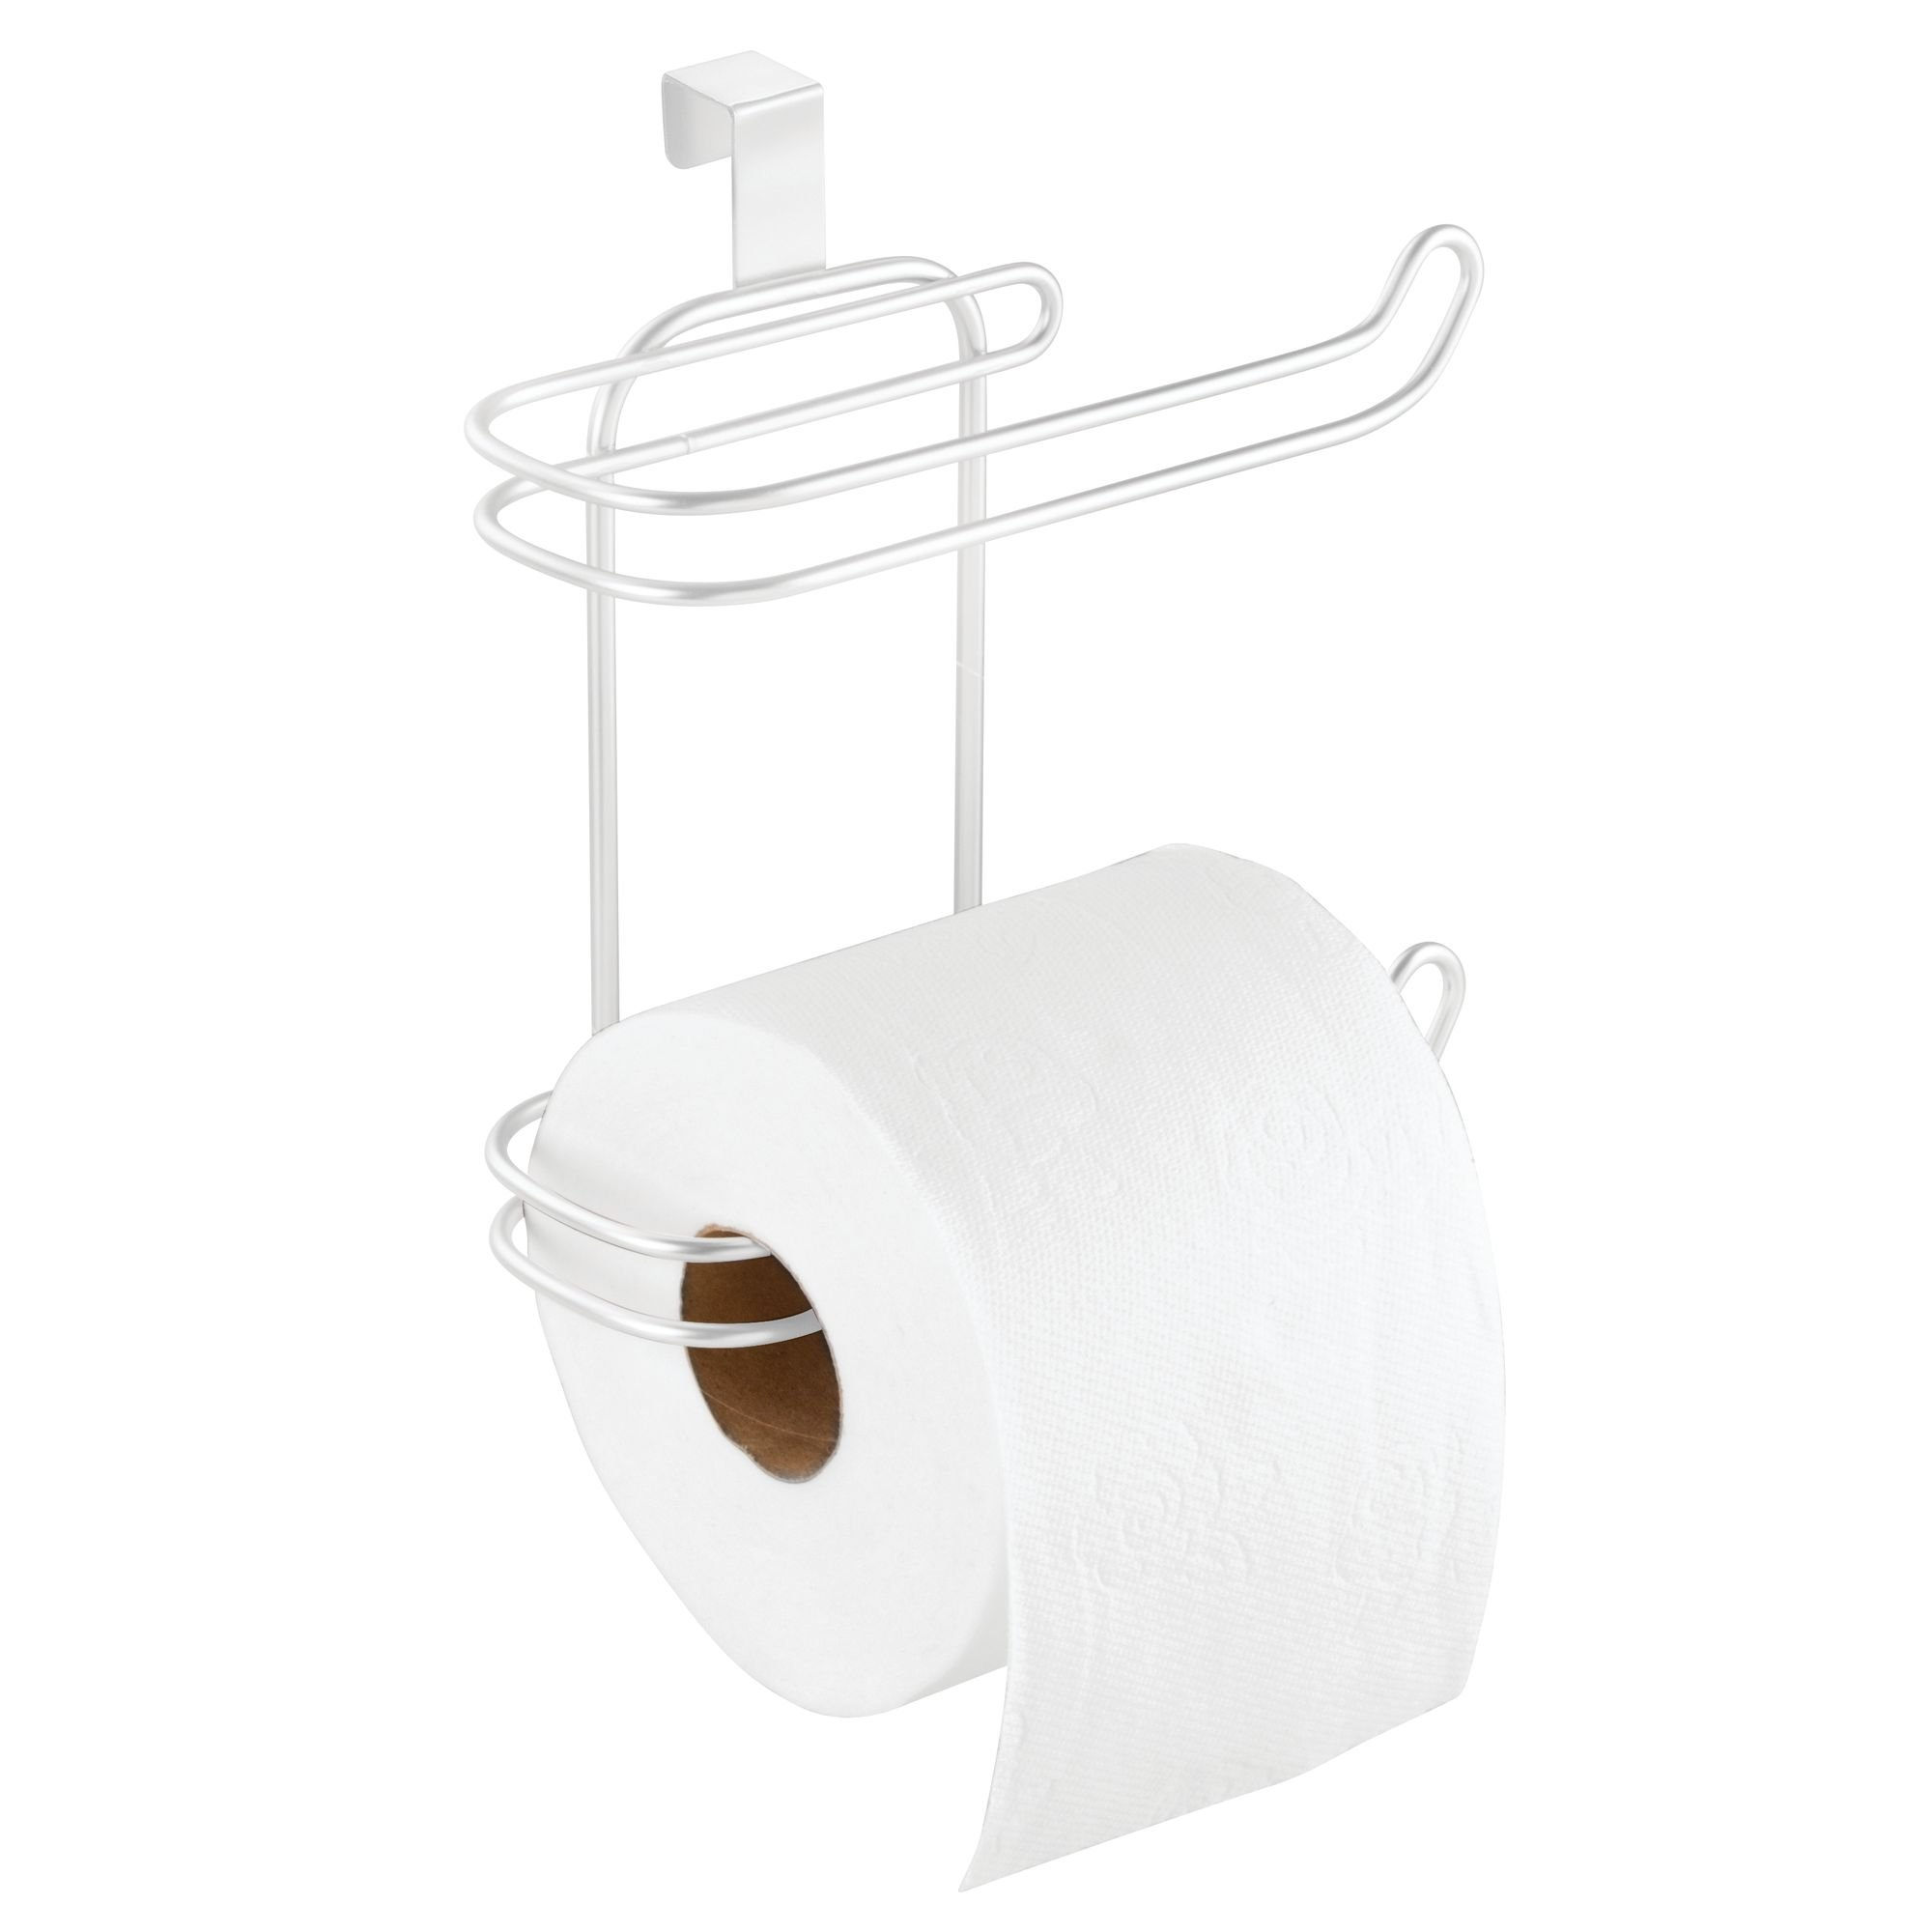 mDesign Compact Hanging Over The Tank Toilet Tissue Paper Roll Holder and Dispenser for Bathroom Storage - Holds 1 Extra Roll - Space Saving Design - Pack of 2, Durable Metal Wire in White Finish by mDesign (Image #4)